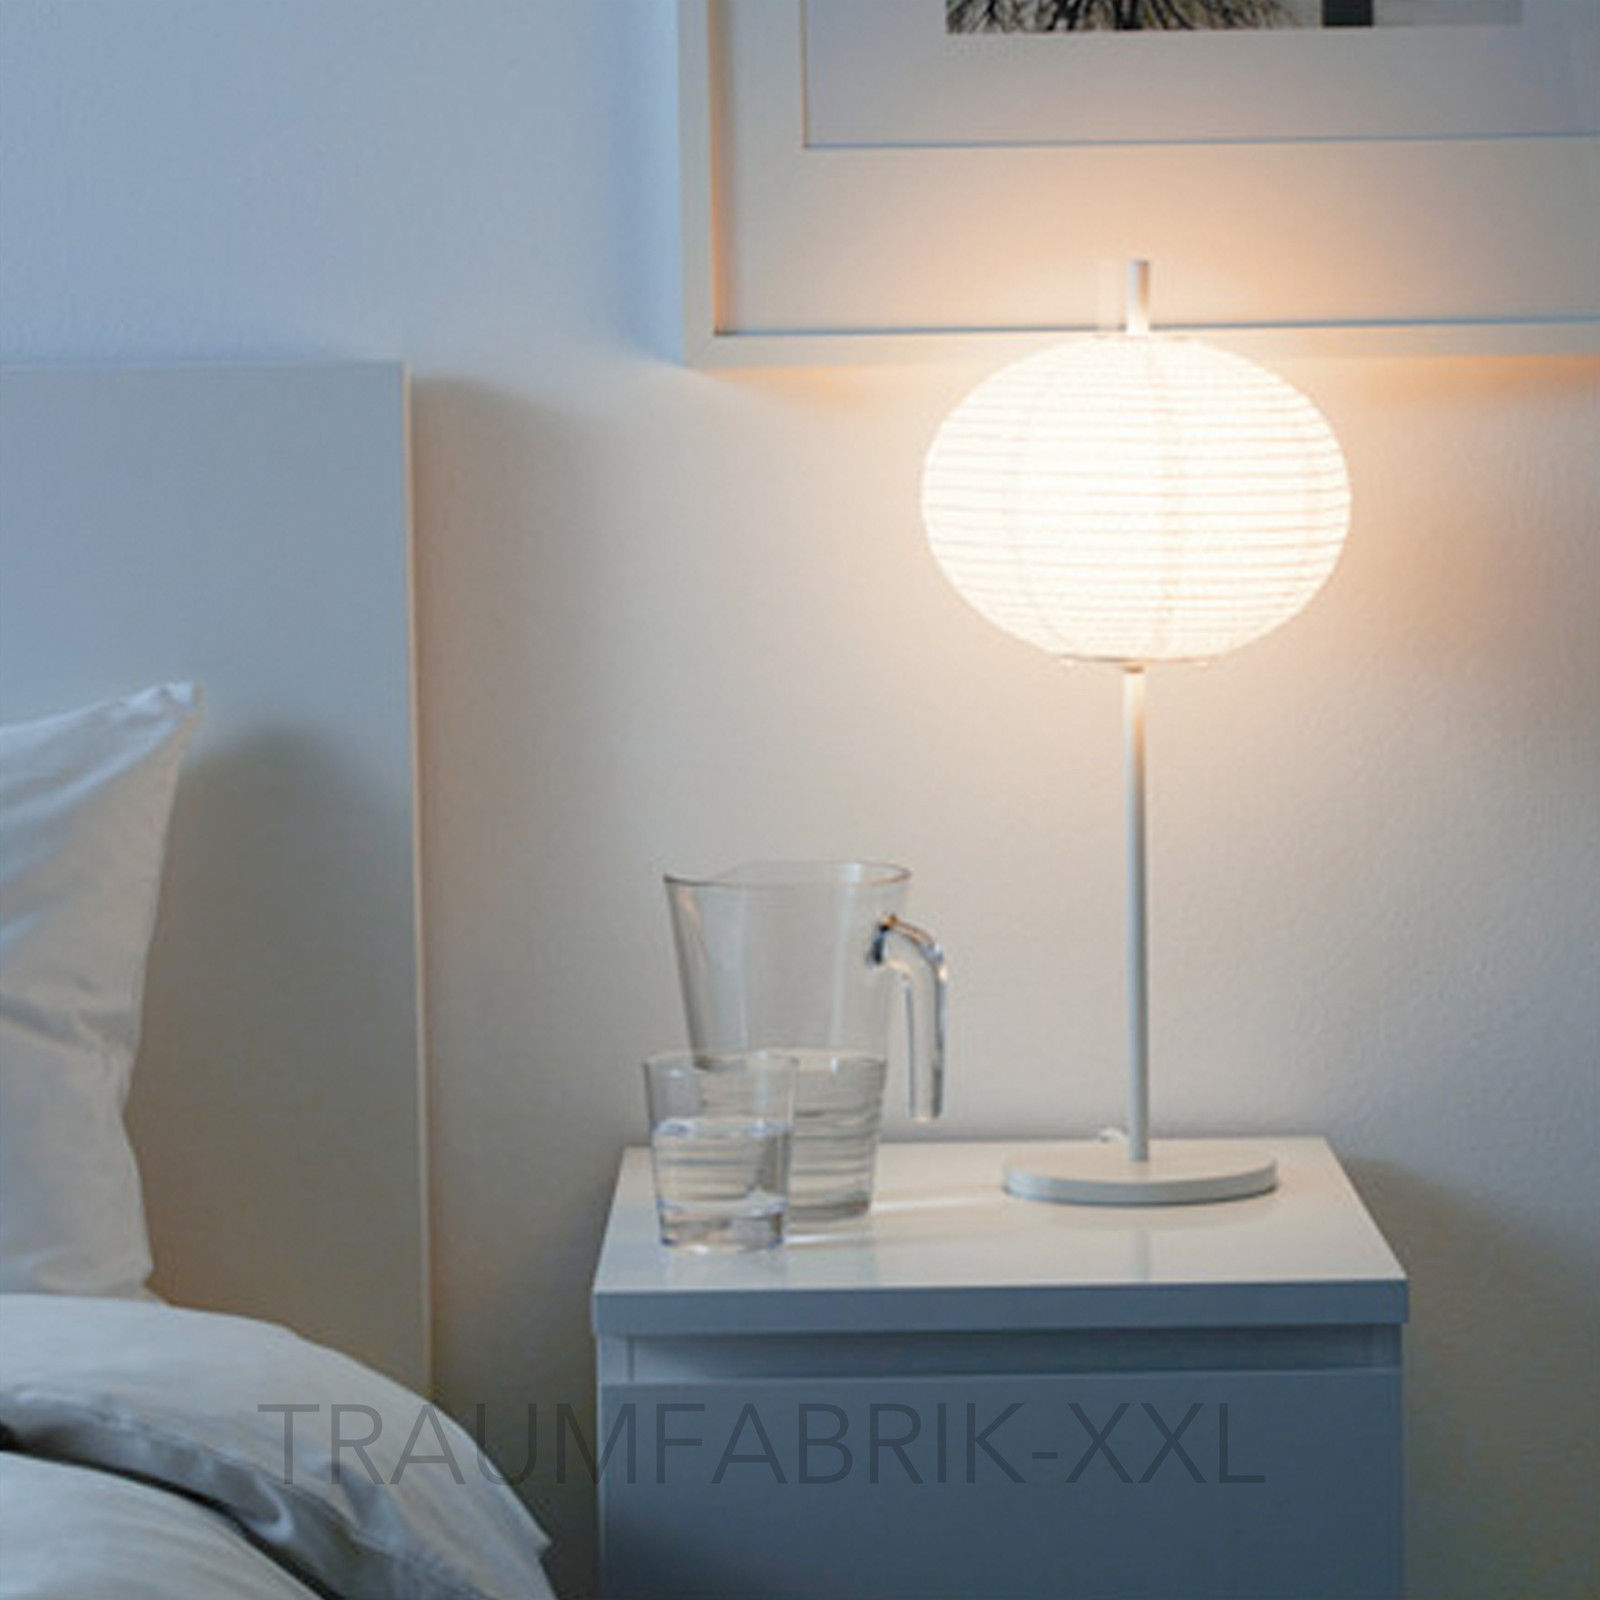 xxl lampen great ikea solleftea lampe with xxl lampen. Black Bedroom Furniture Sets. Home Design Ideas